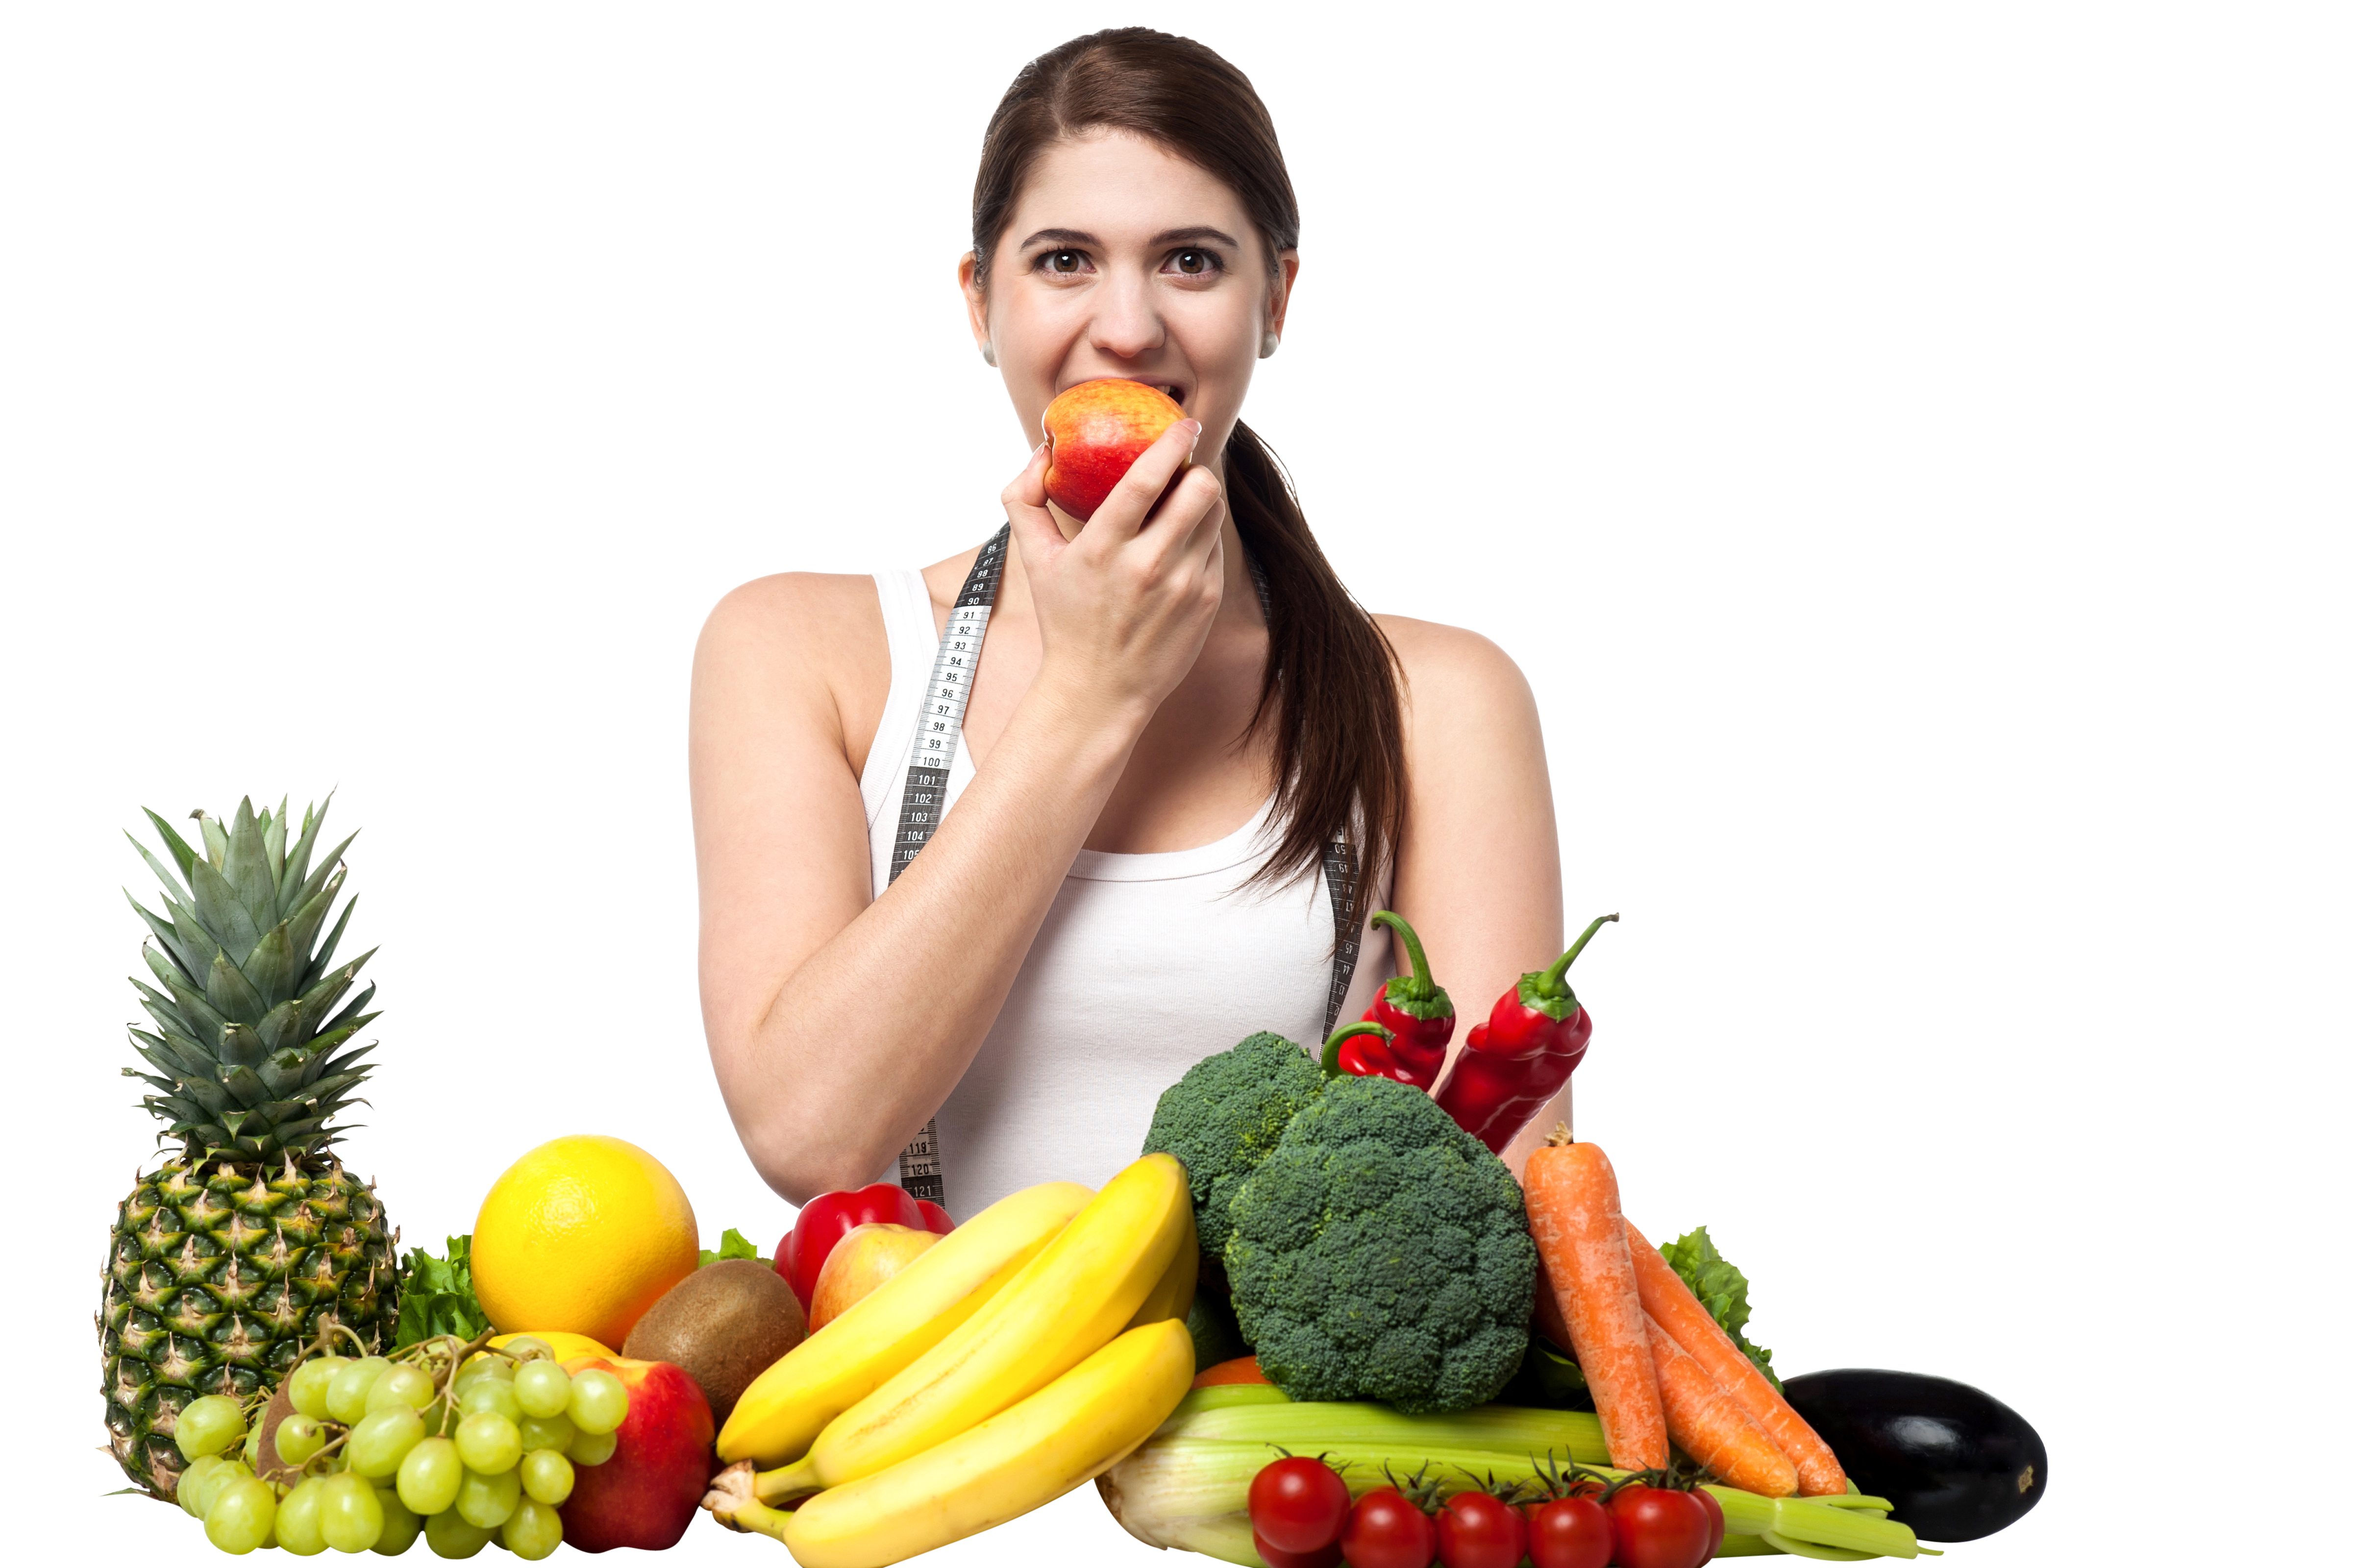 Free png images for commercial use. Girl with fruits play